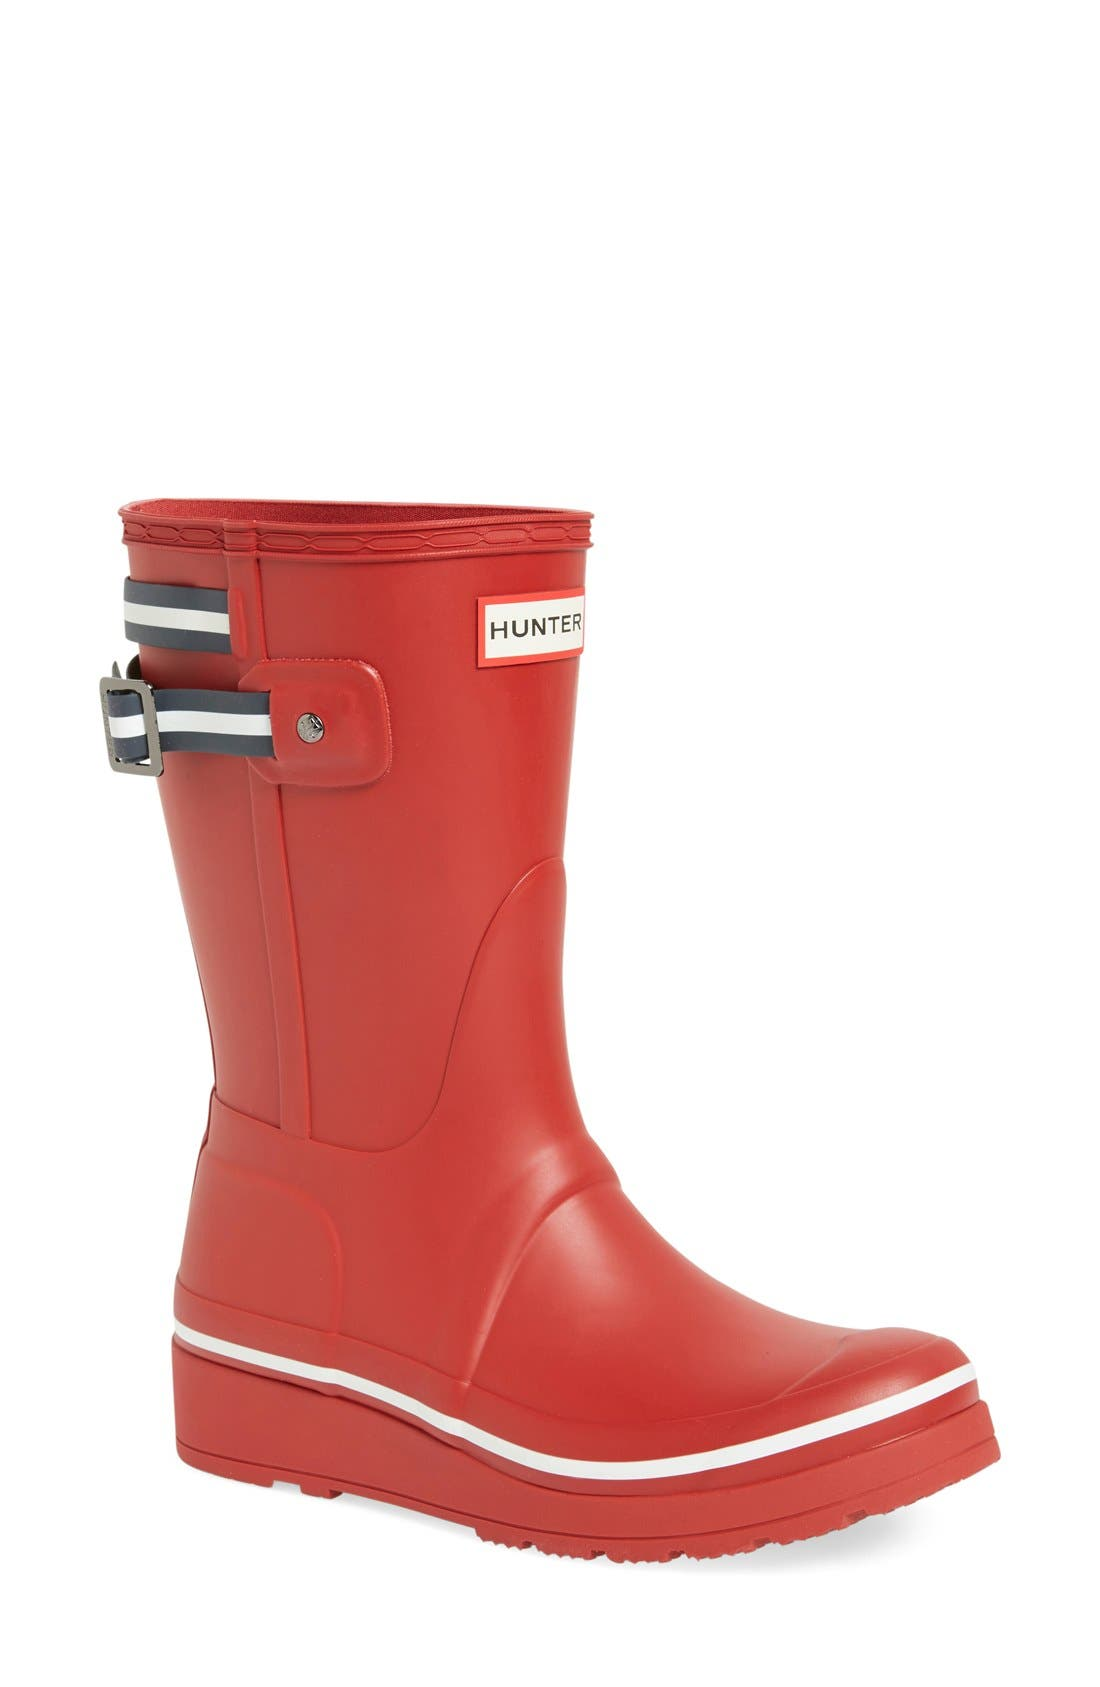 Alternate Image 1 Selected - Hunter 'Original Short' Wedge Rain Boot (Women)